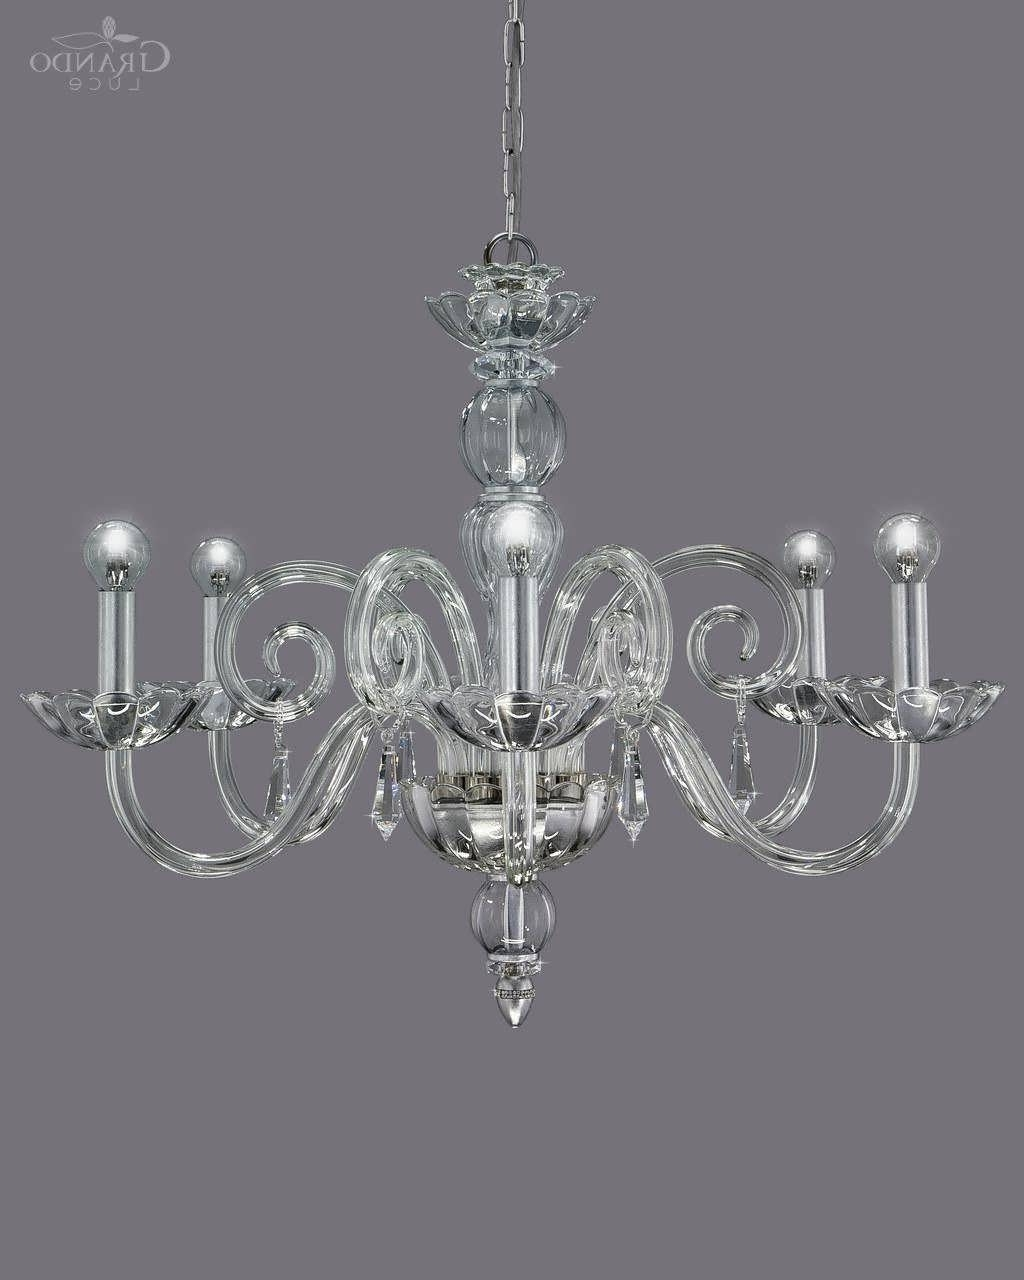 Chandelier : Small Chandeliers Small White Chandelier Candle Pertaining To Well Liked Short Chandeliers (View 3 of 20)